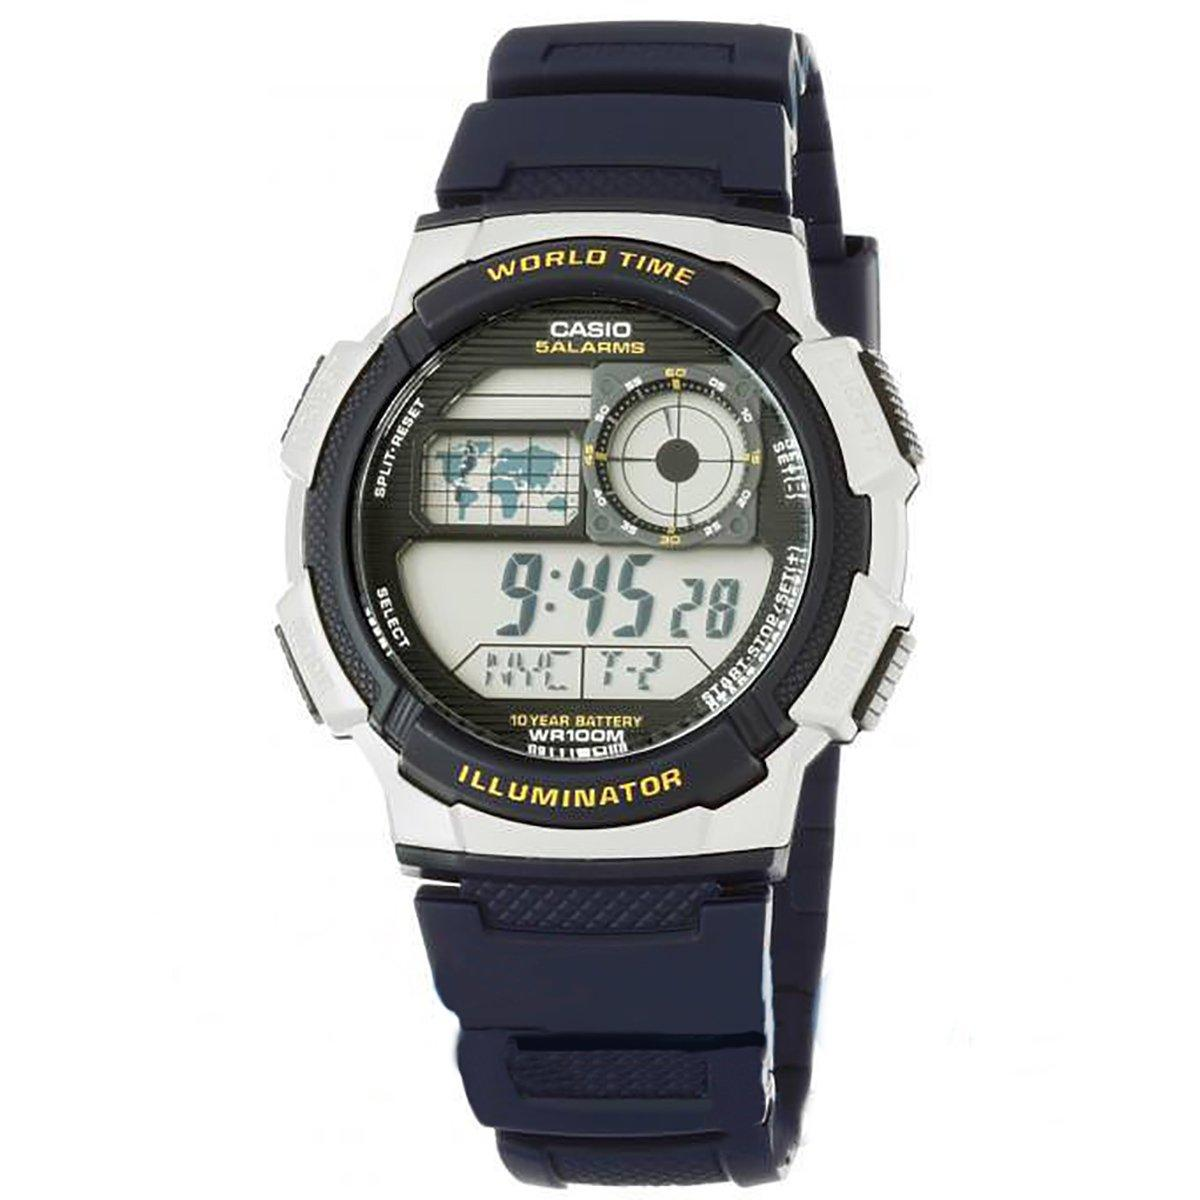 Sell Casio Illuminator Youth Cheapest Best Quality Ph Store Aeq 200w 9a Php 1700